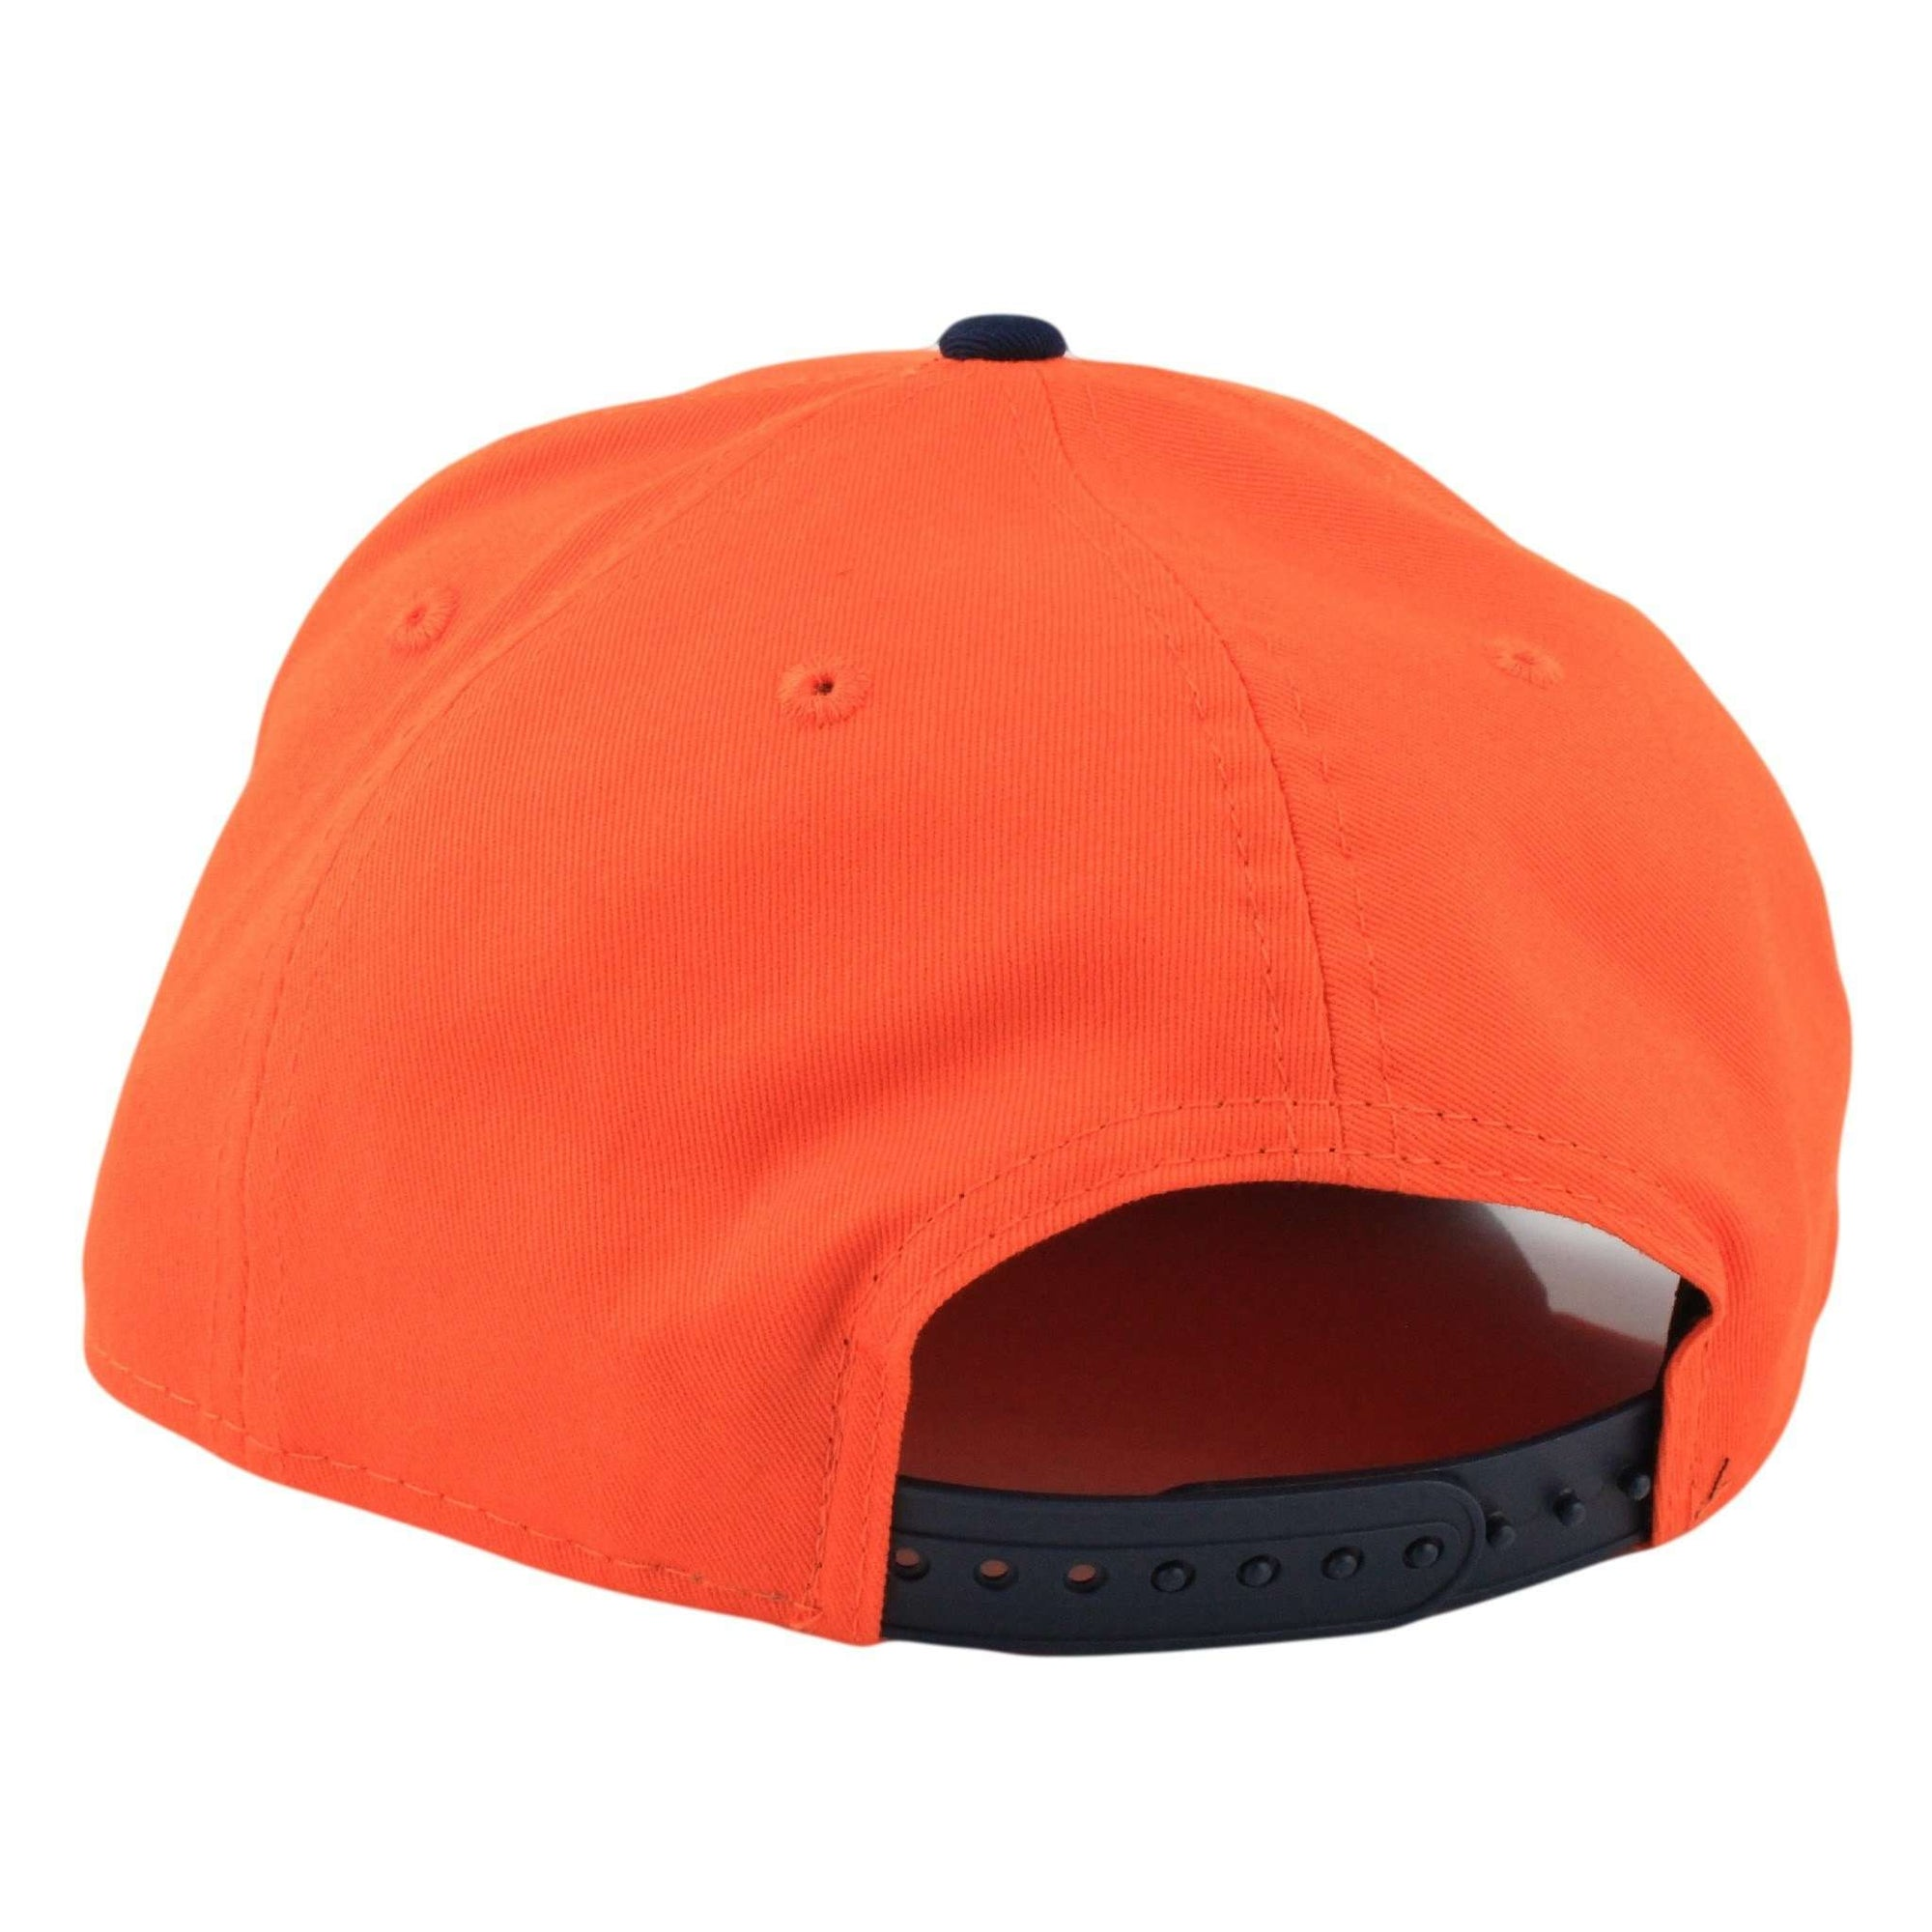 c92e45845 hot new era denver broncos crackle orange blue snapback 269f0 196c8